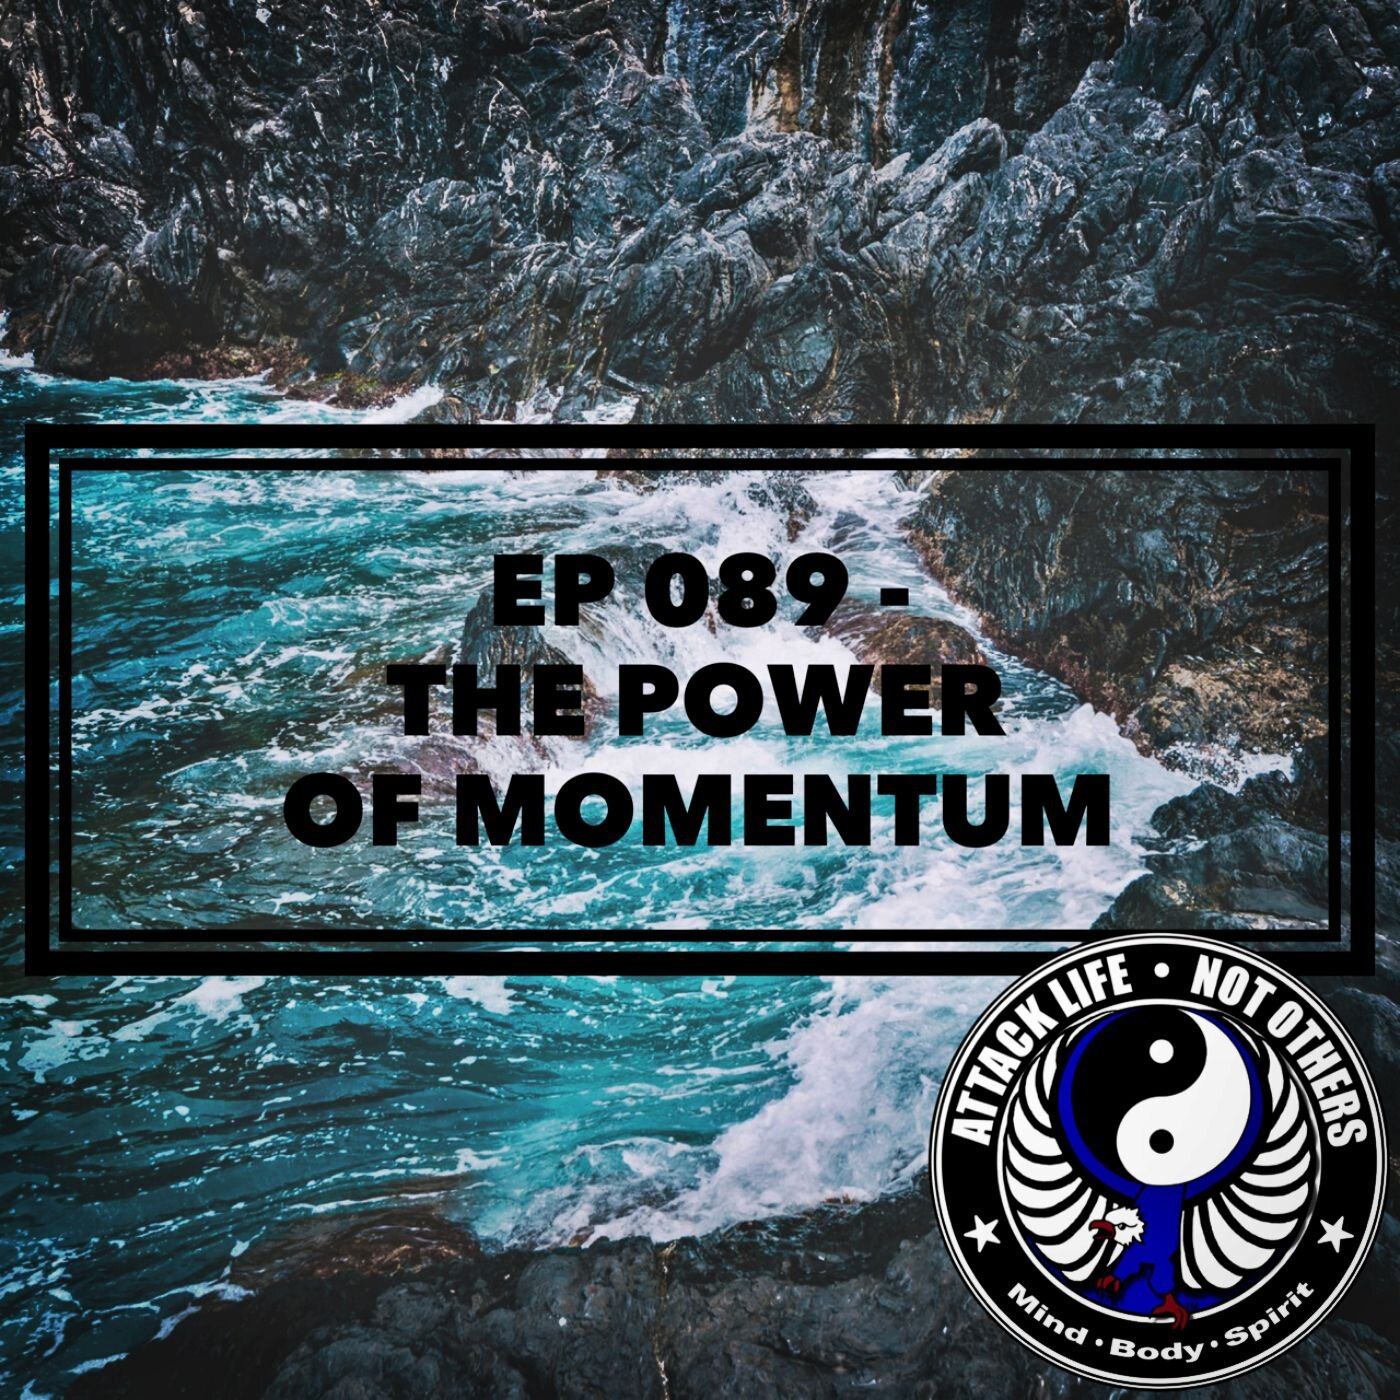 Ep 089 - The Power of Momentum